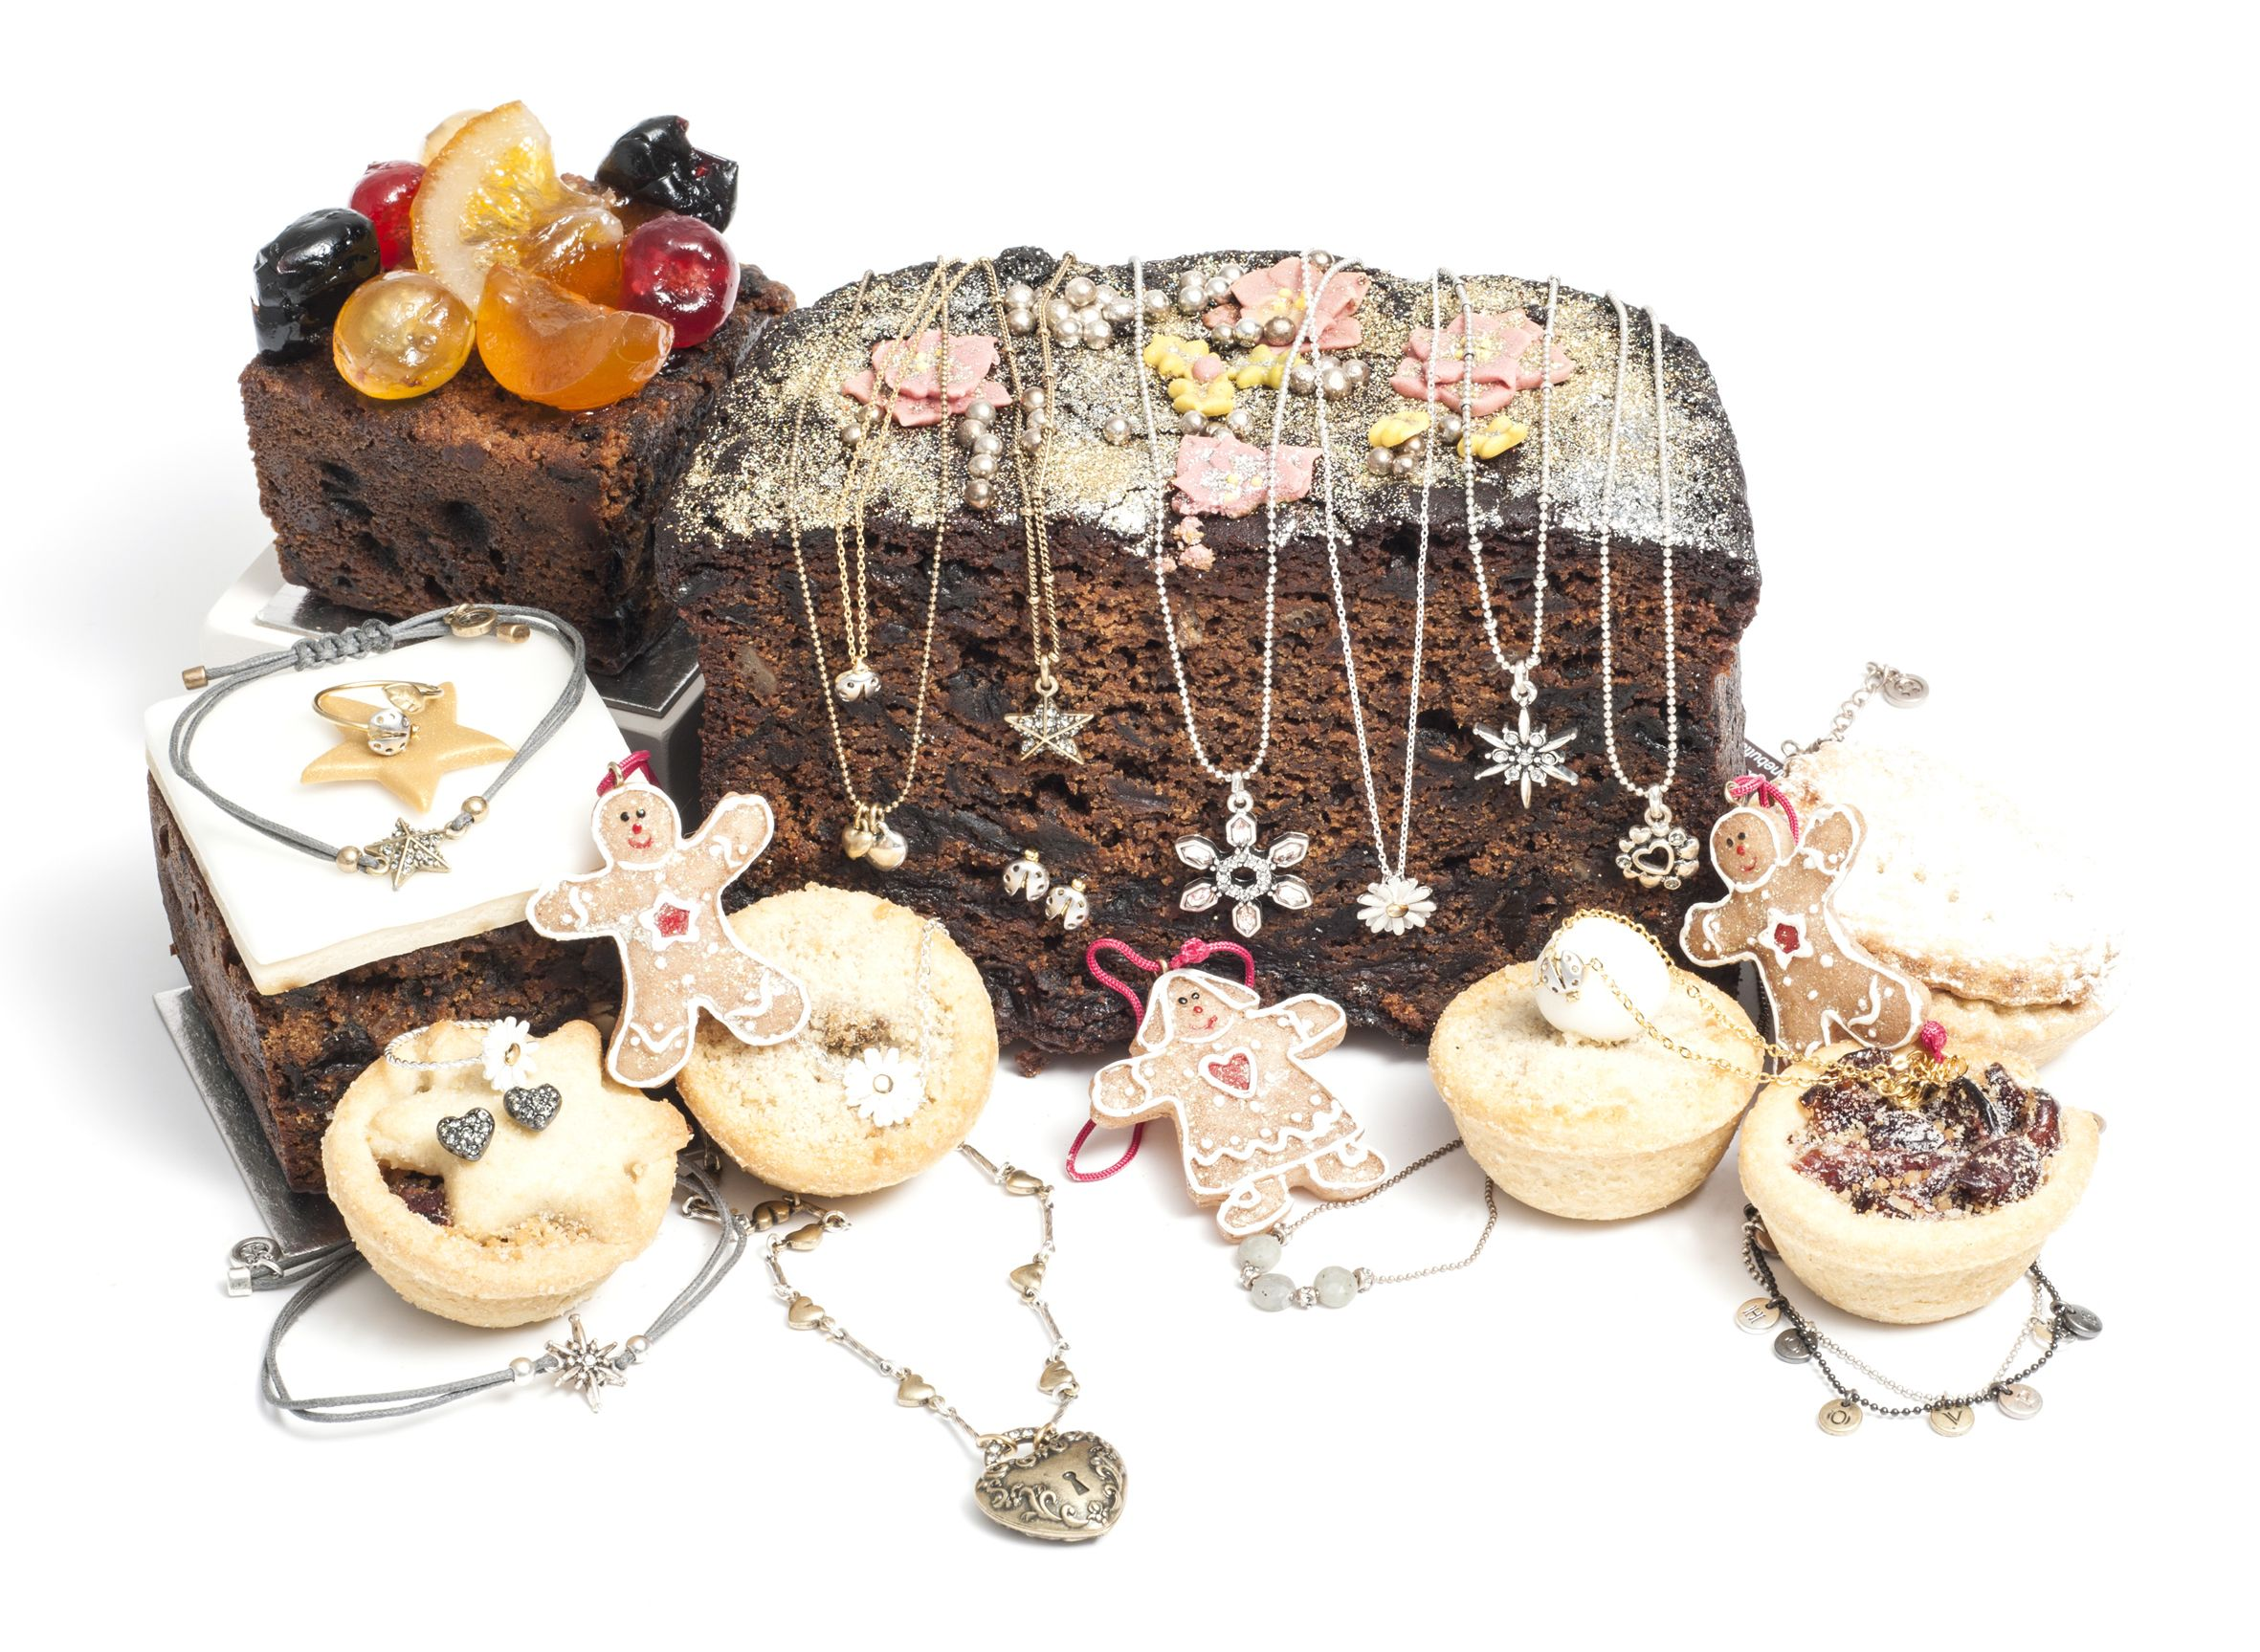 Christmas Cake and Gifts from a recent photo shoot...